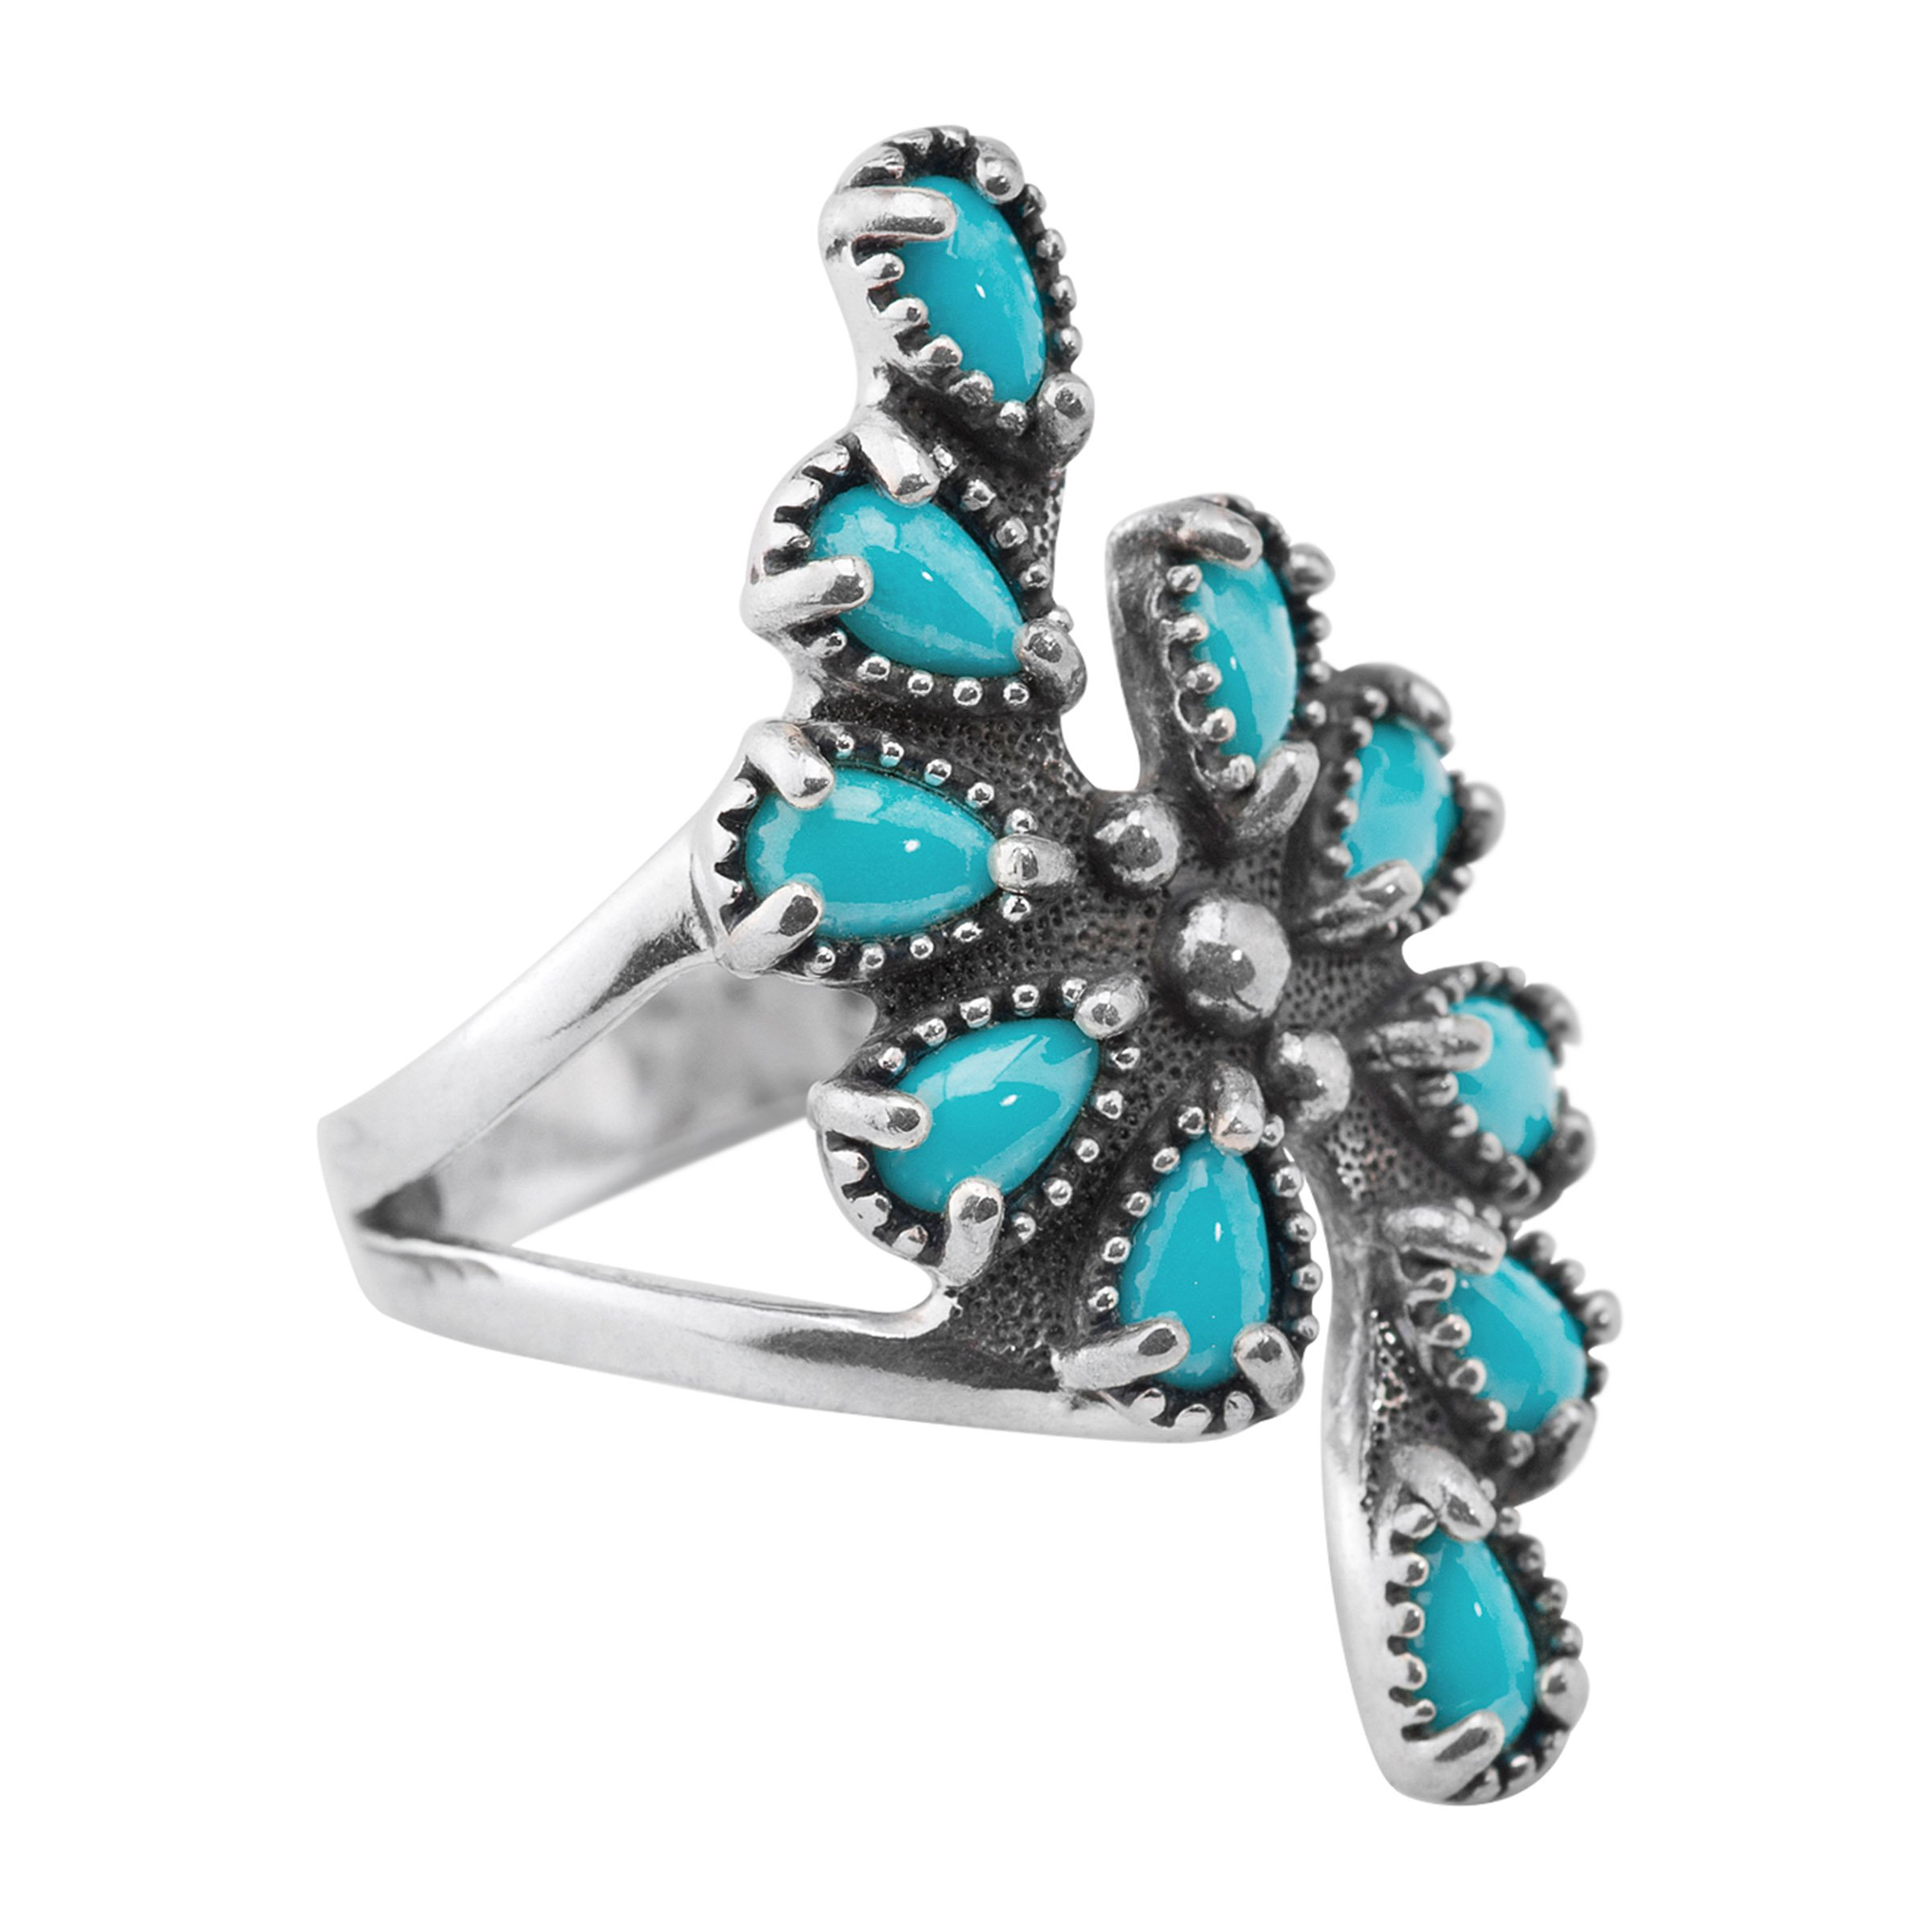 American West 925 Genuine Sterling Silver Sleeping Beauty Turquoise Spiral Ring